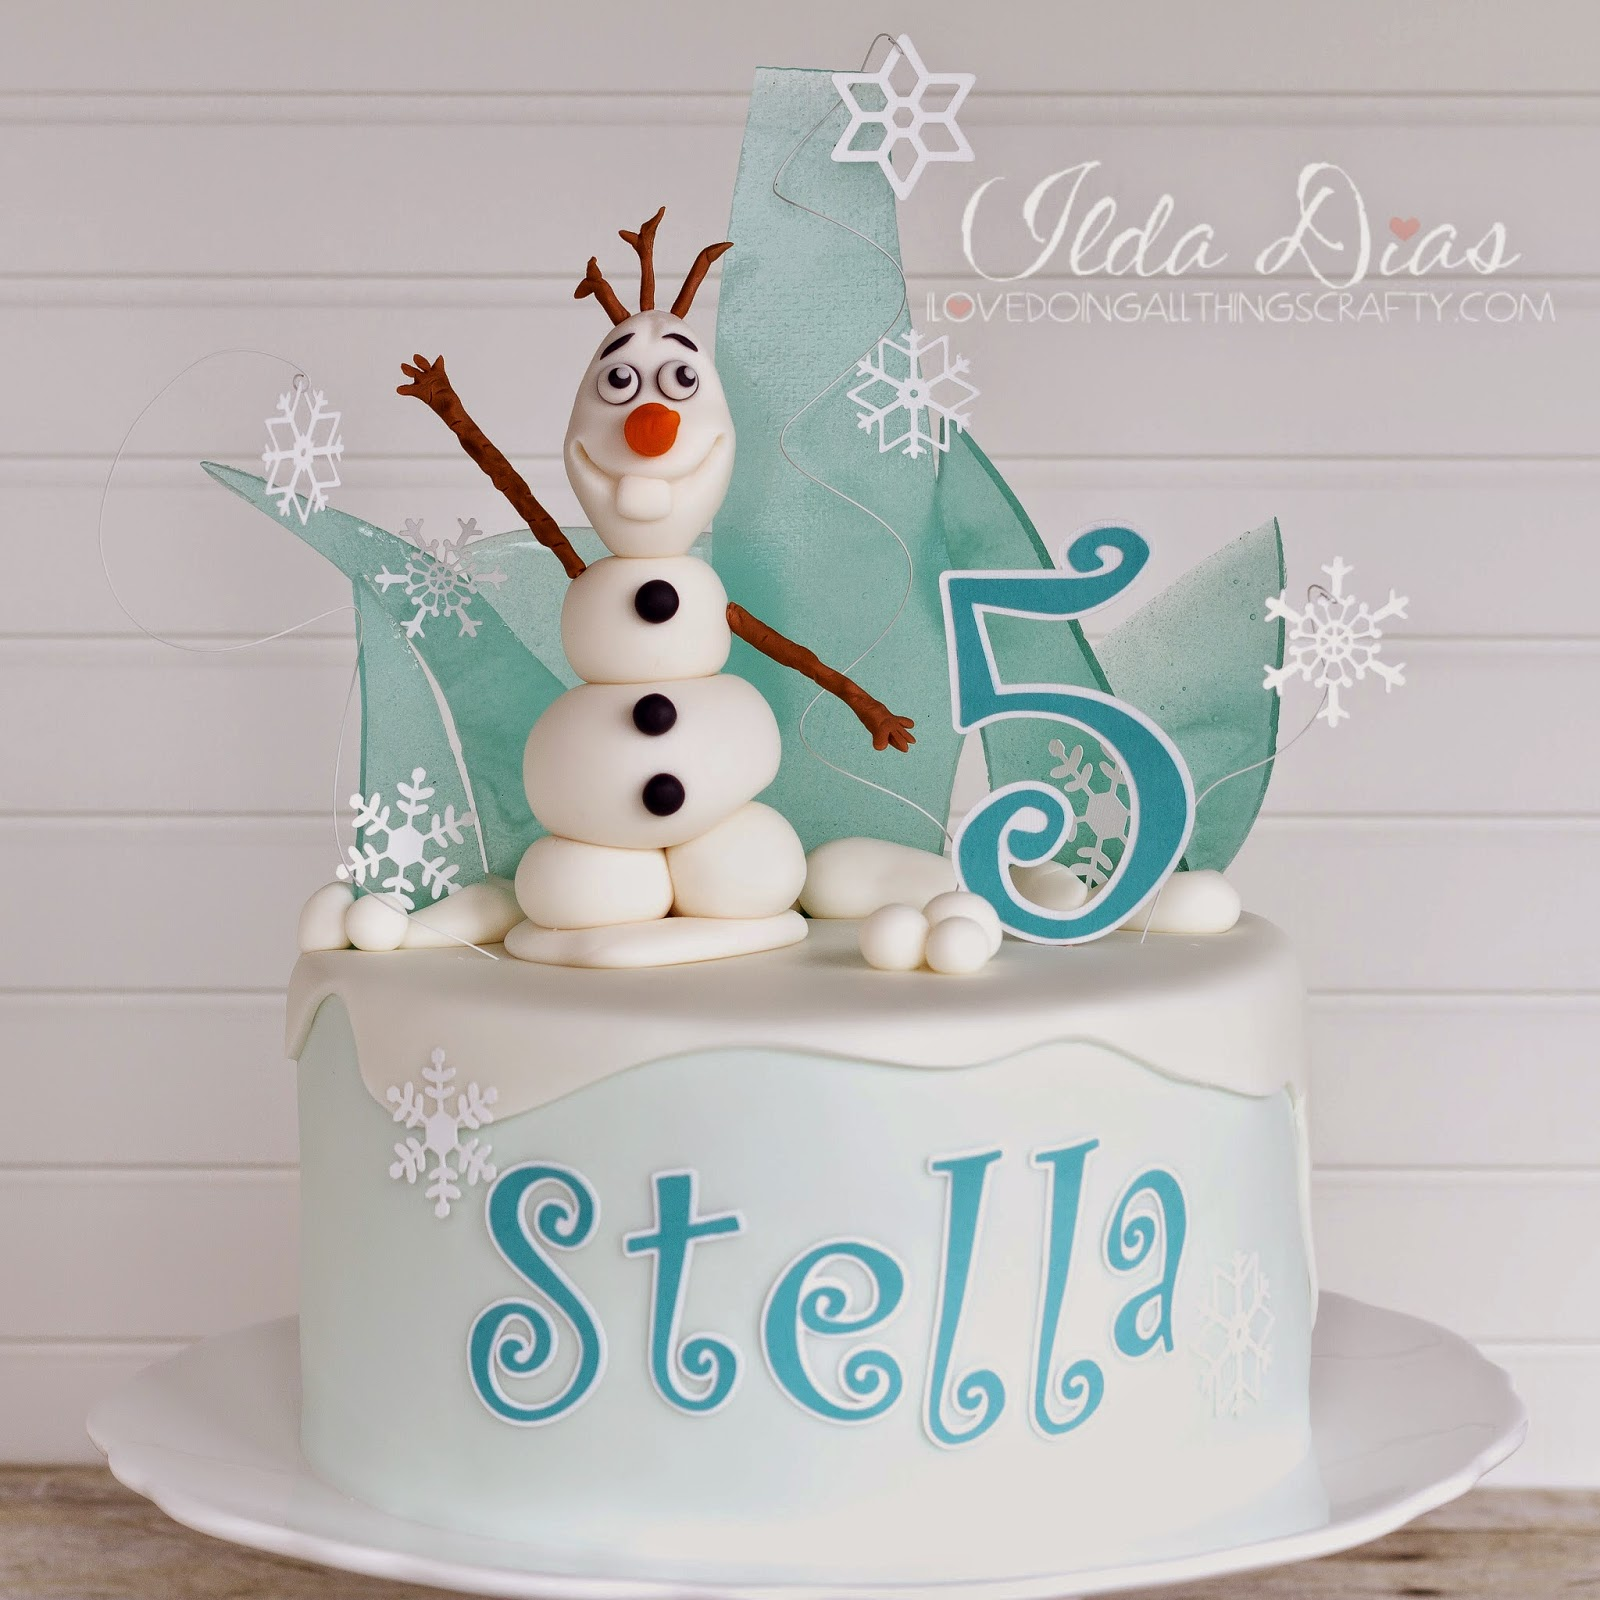 I Love Doing All Things Crafty Frozen Themed Birthday Cake And Card